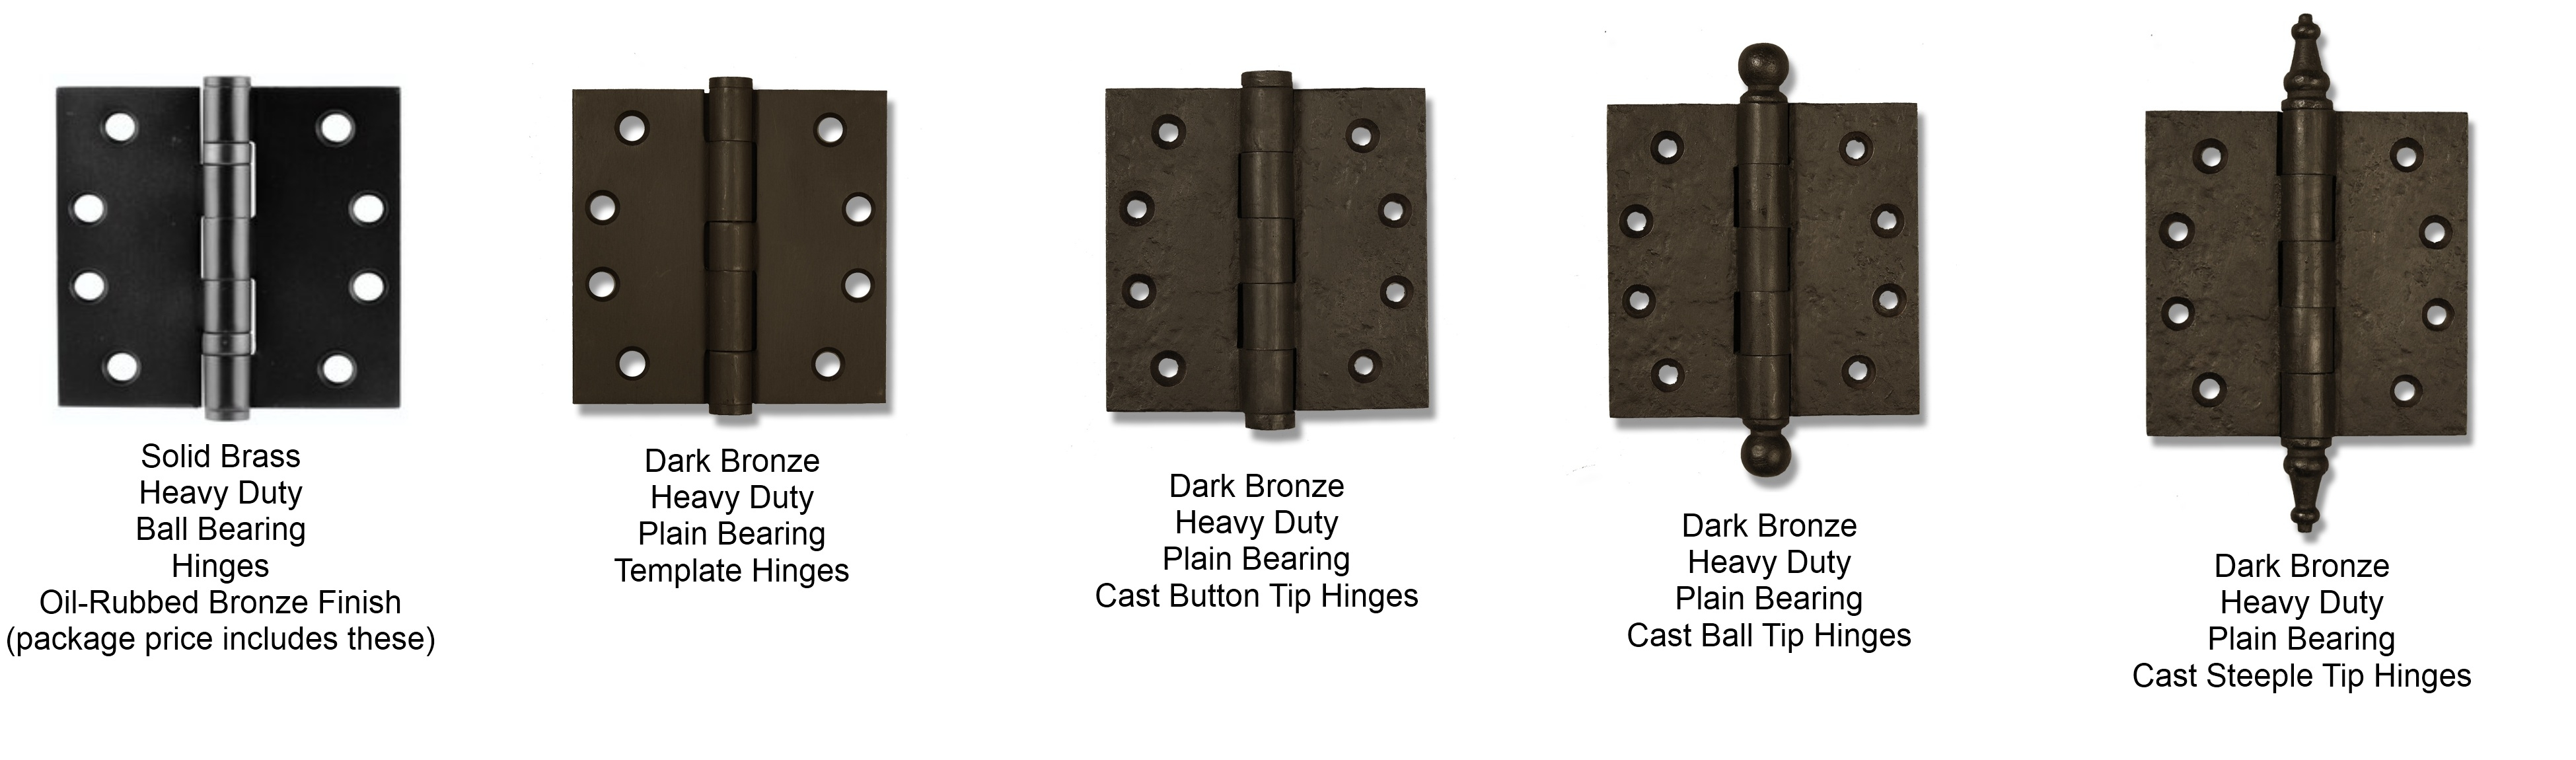 coastal-bronze-hinge-options-gate-door-hardware.jpg